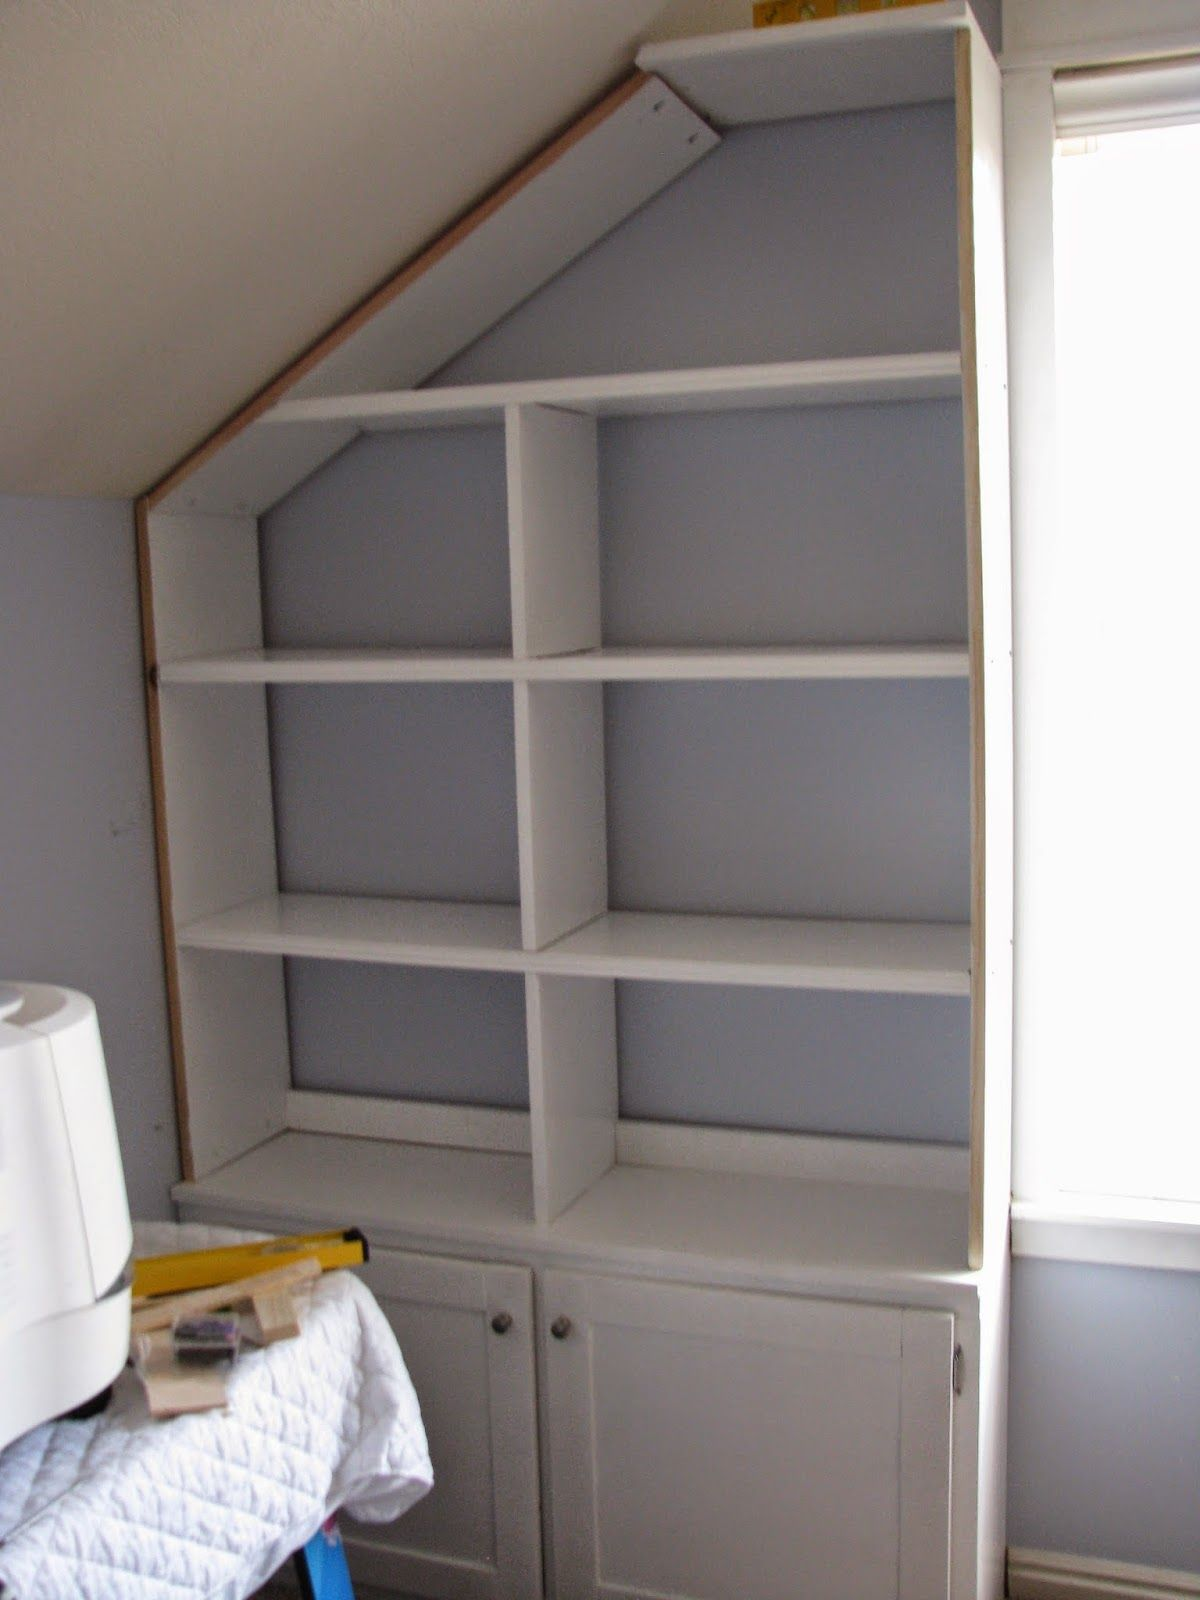 My First Big Project Of 2015 Was Making Some Built-in Shelves And